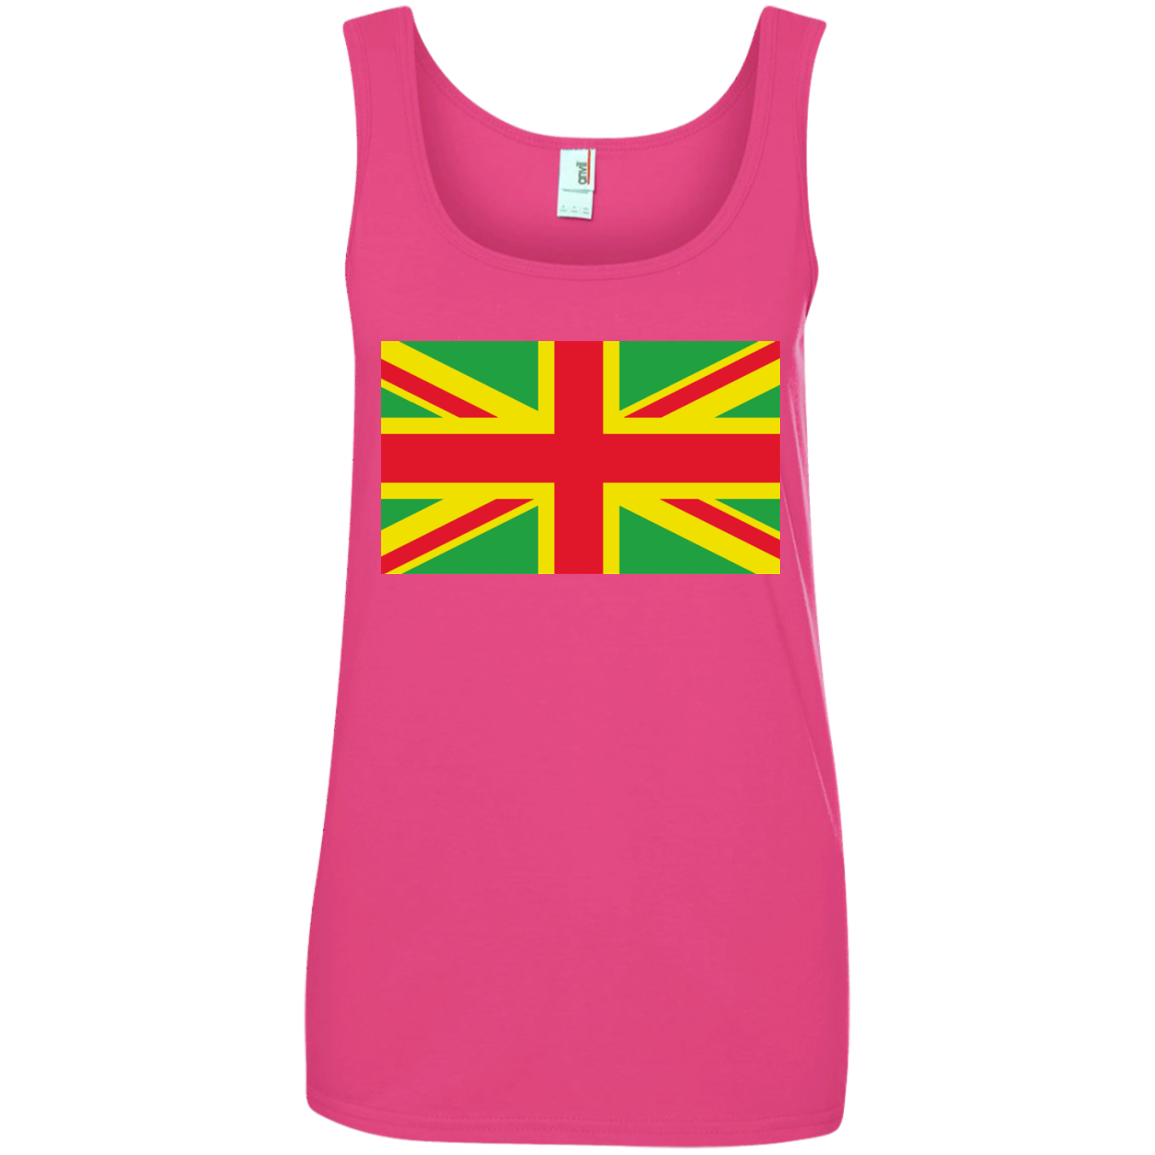 ... Union Jack With Rasta Flag Colors ...